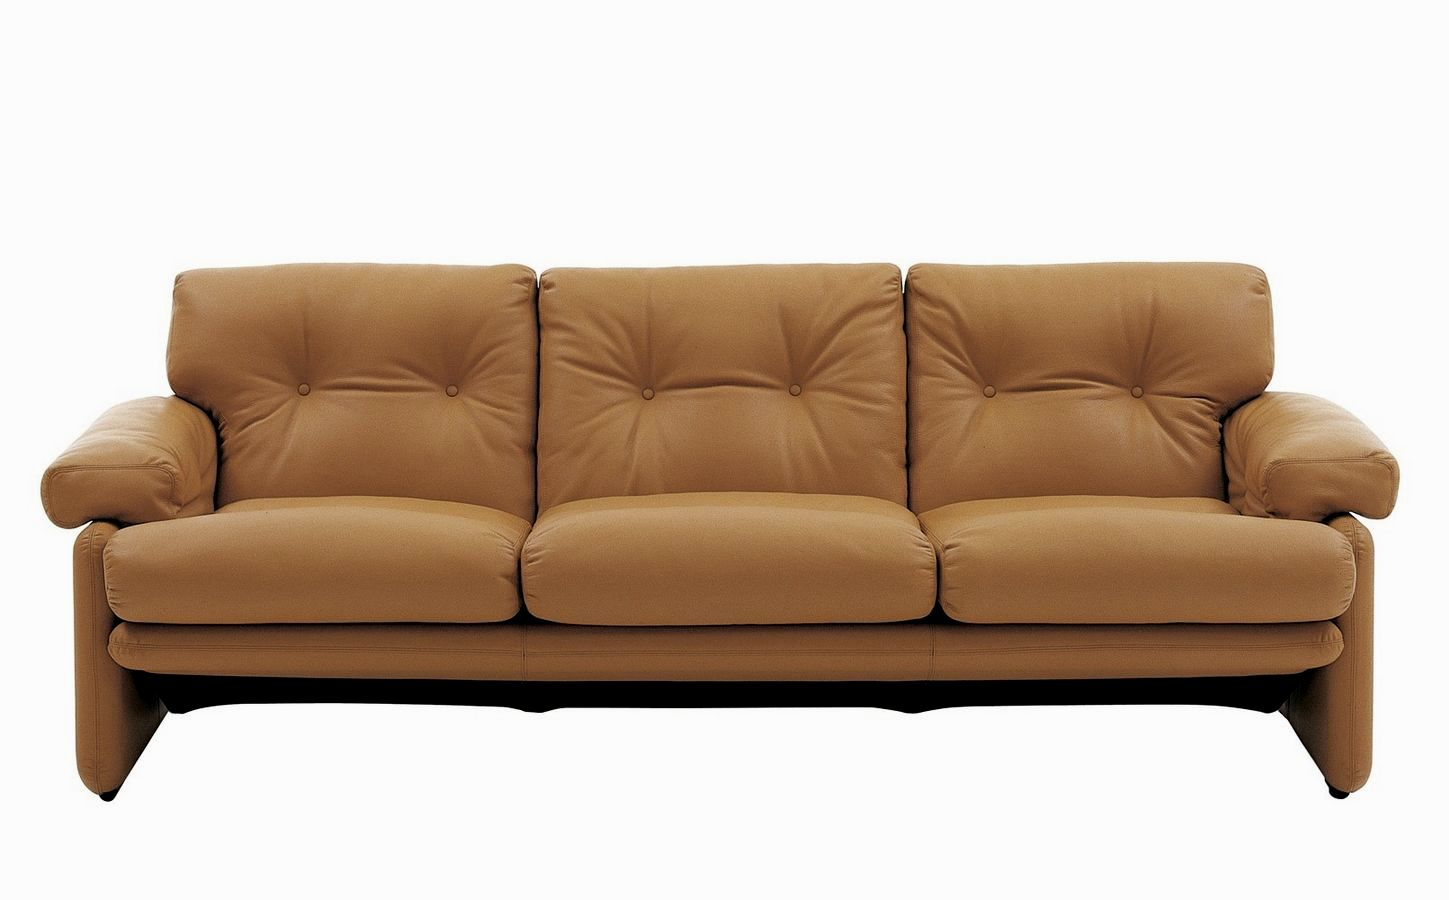 finest sofa beds cheap collection-Inspirational sofa Beds Cheap Inspiration